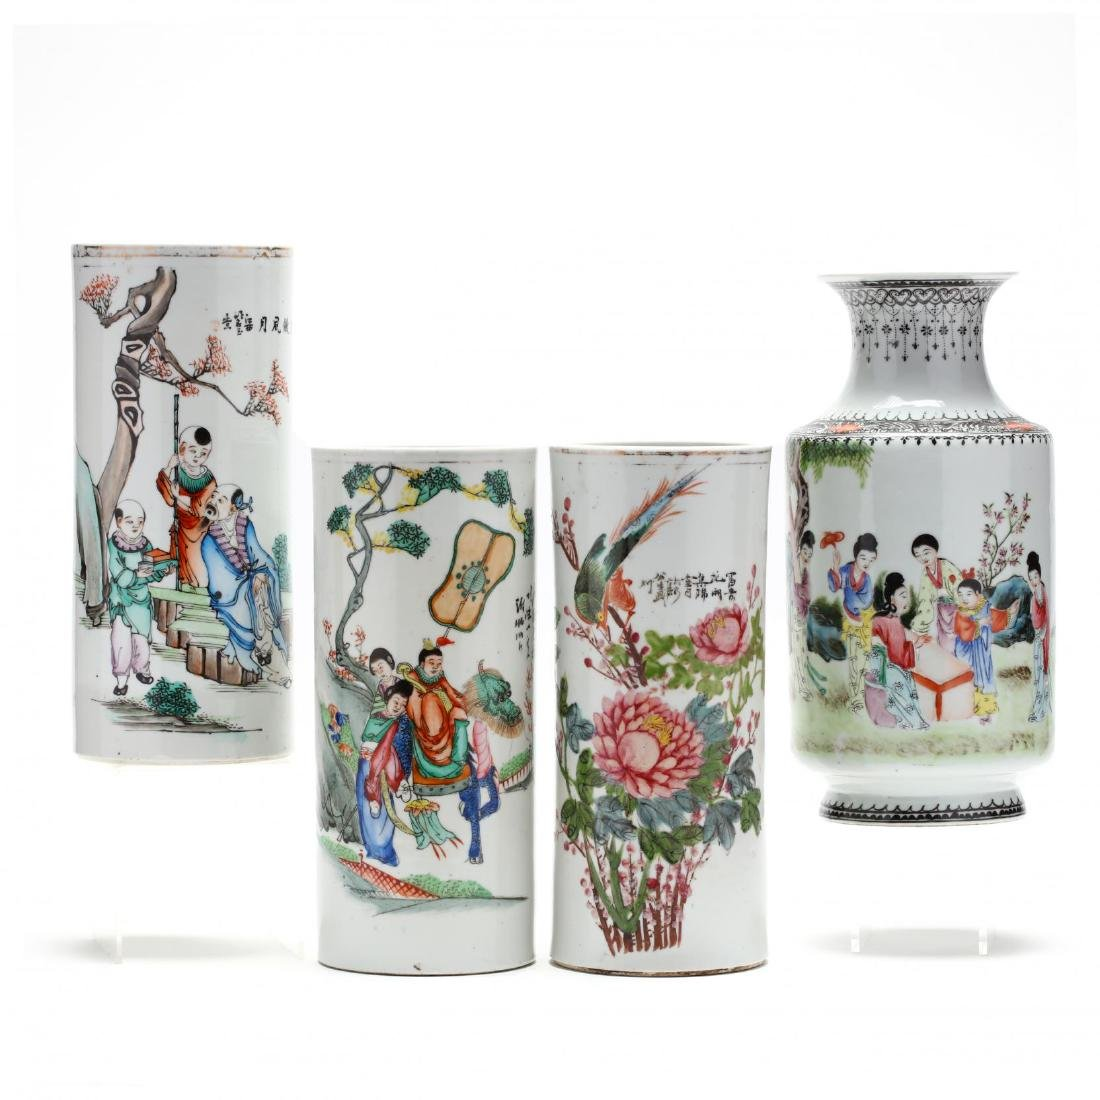 A Selection of Four Chinese Republic Period Porcelains